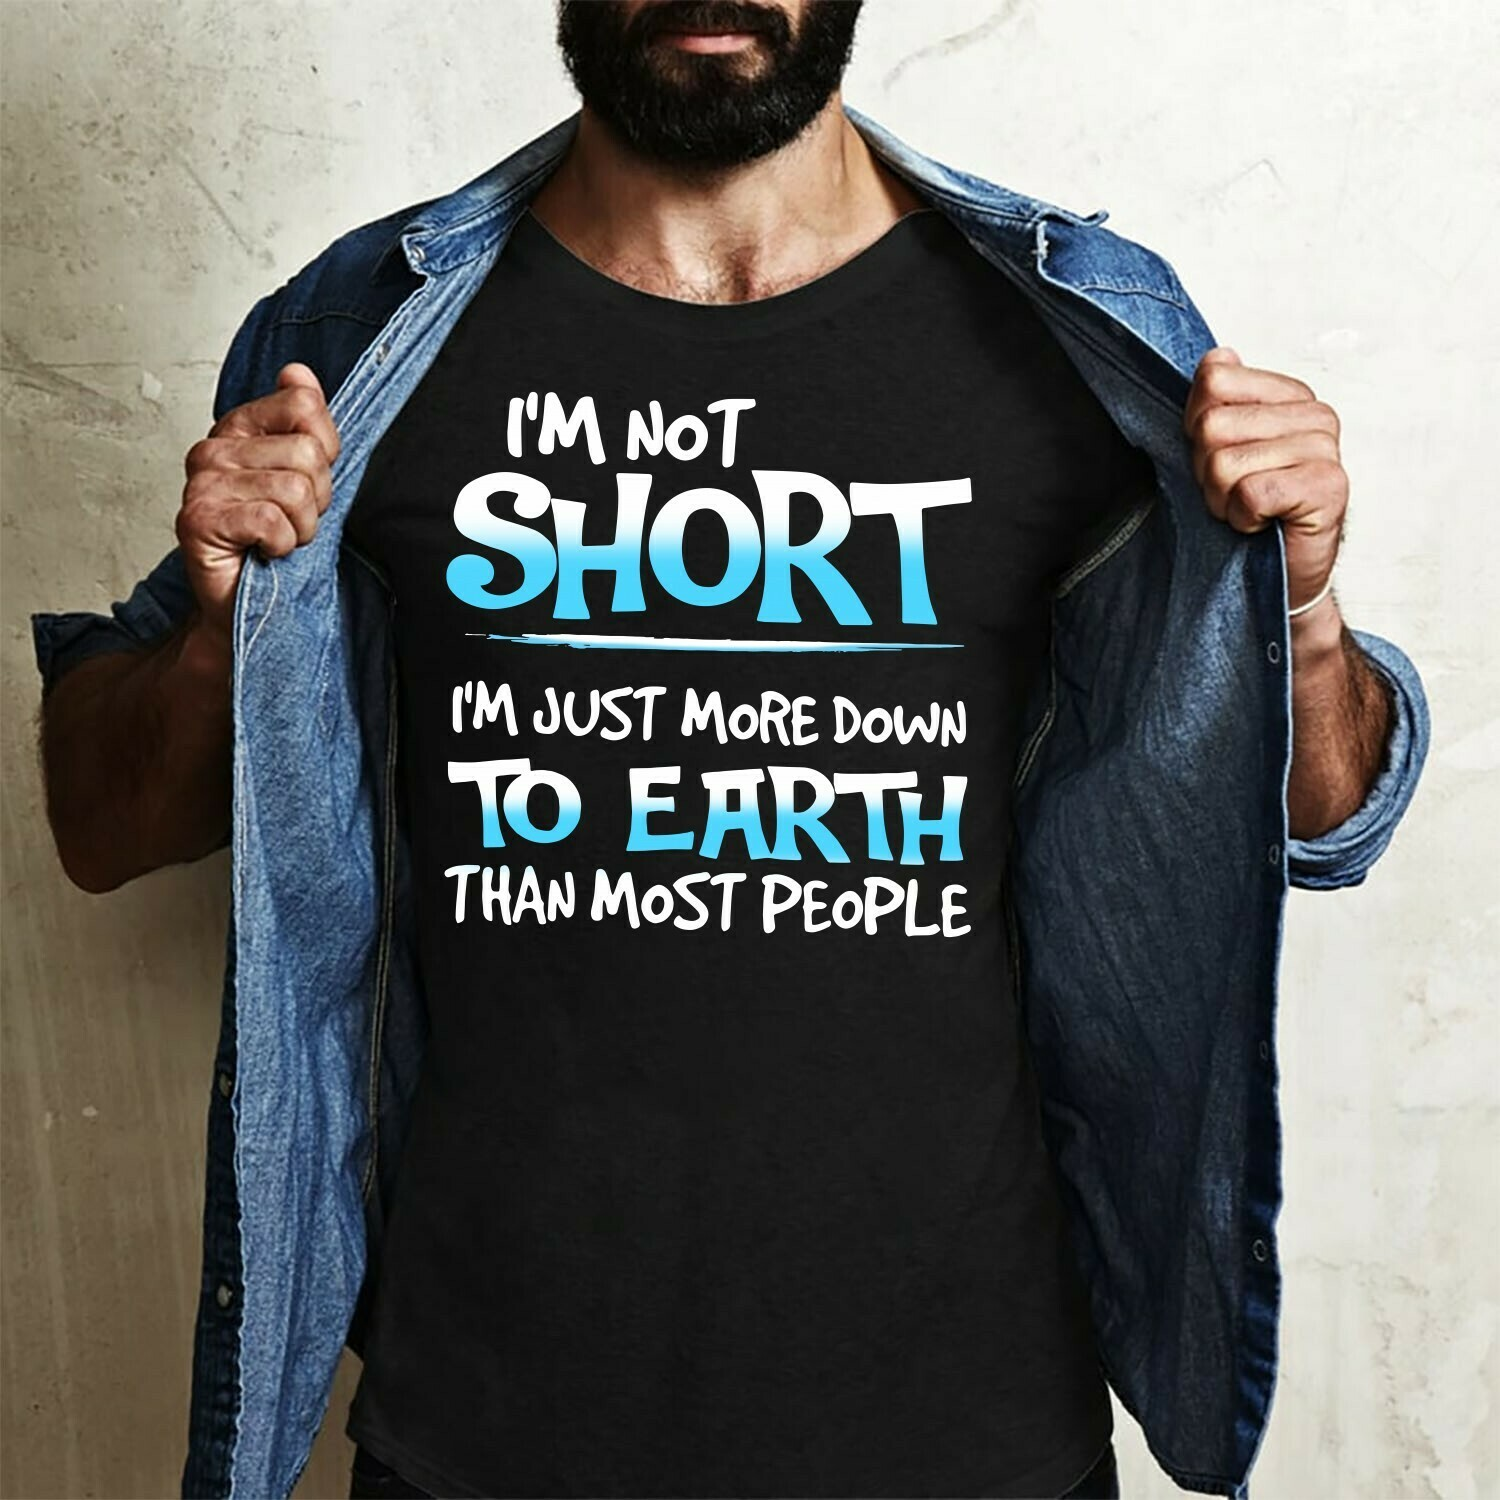 I'm not Short I'm just more down to Earth than most people,I'm Not Short I'm Fun Sized,I'm Not Short Quotes  T-Shirt Hoodie Sweatshirt Sweater Tee Kids Youth Gifts Jolly Family Gifts